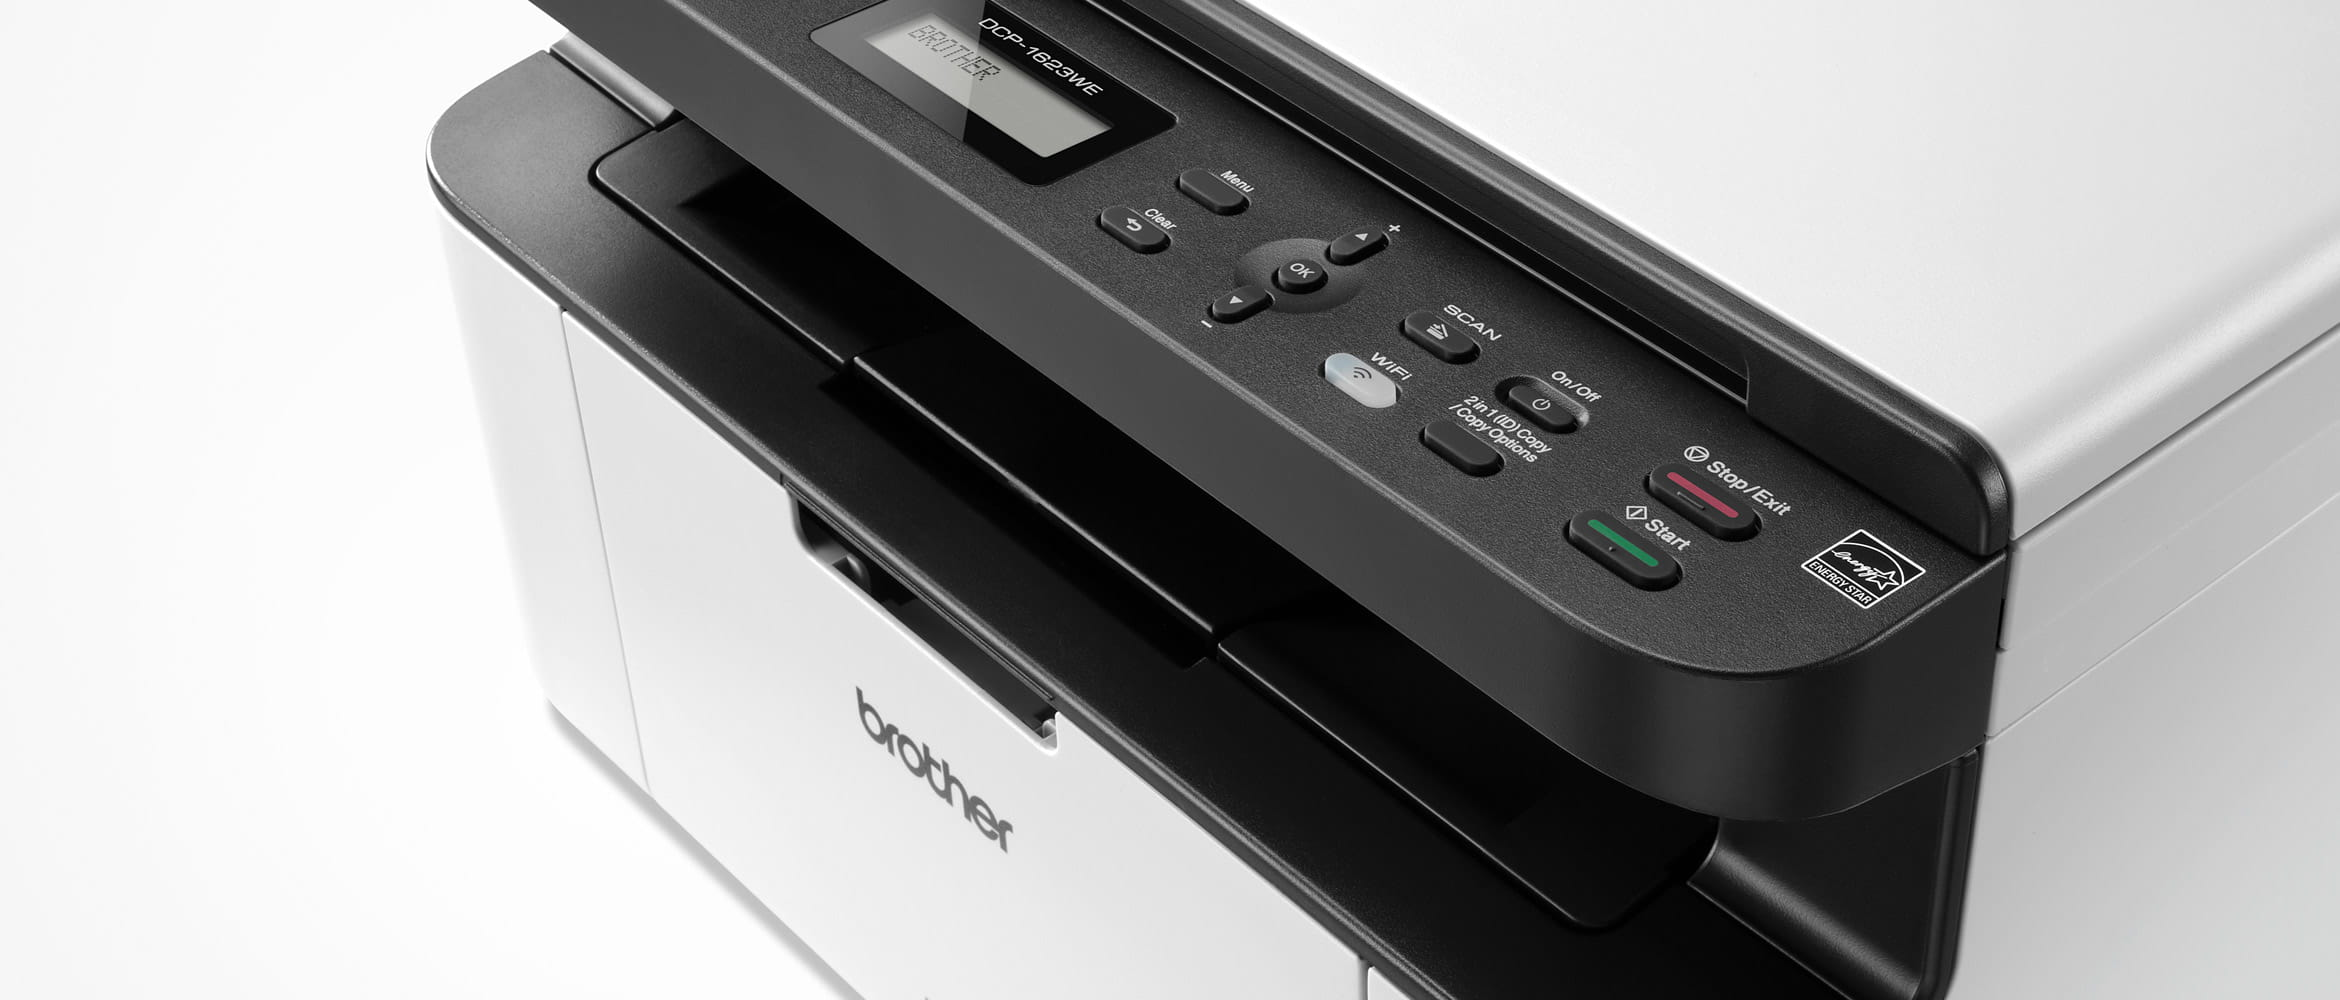 Brother-all-in-one-laser-printer